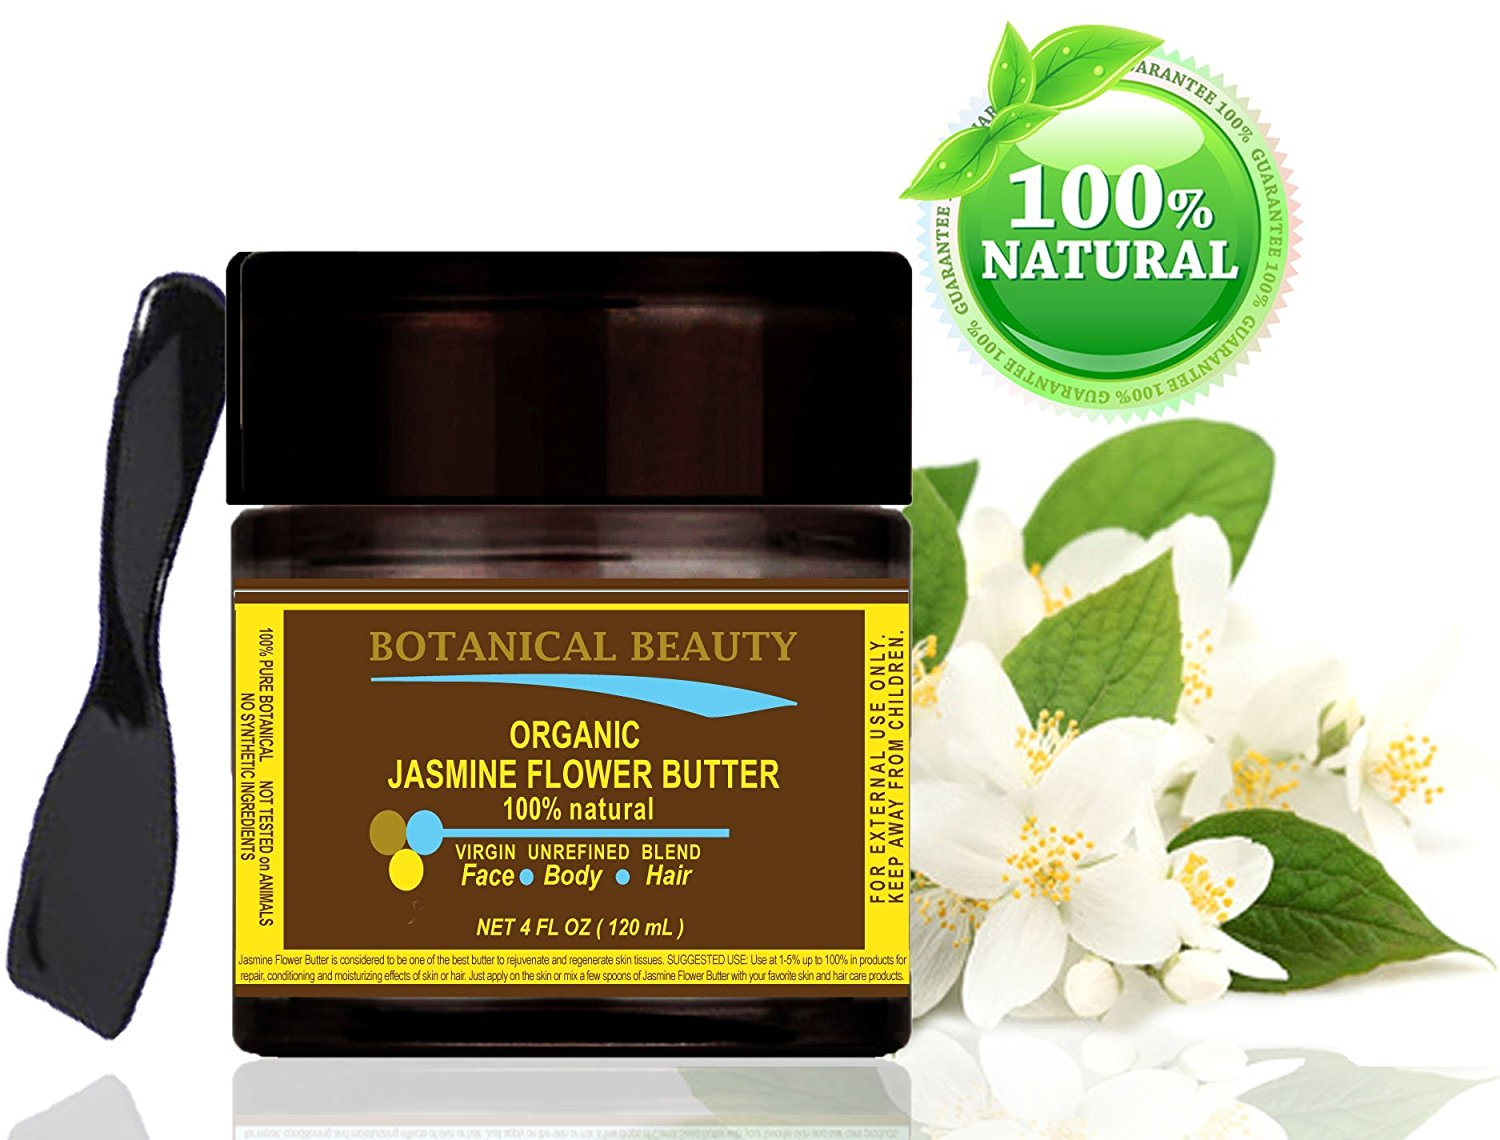 Buy jasmine flower butter organic 100 natural 100 pure jasmine flower butter organic 100 natural 100 pure botanicals virgin unrefined blend cold pressed 4 oz 120 ml for skin hair and nail care izmirmasajfo